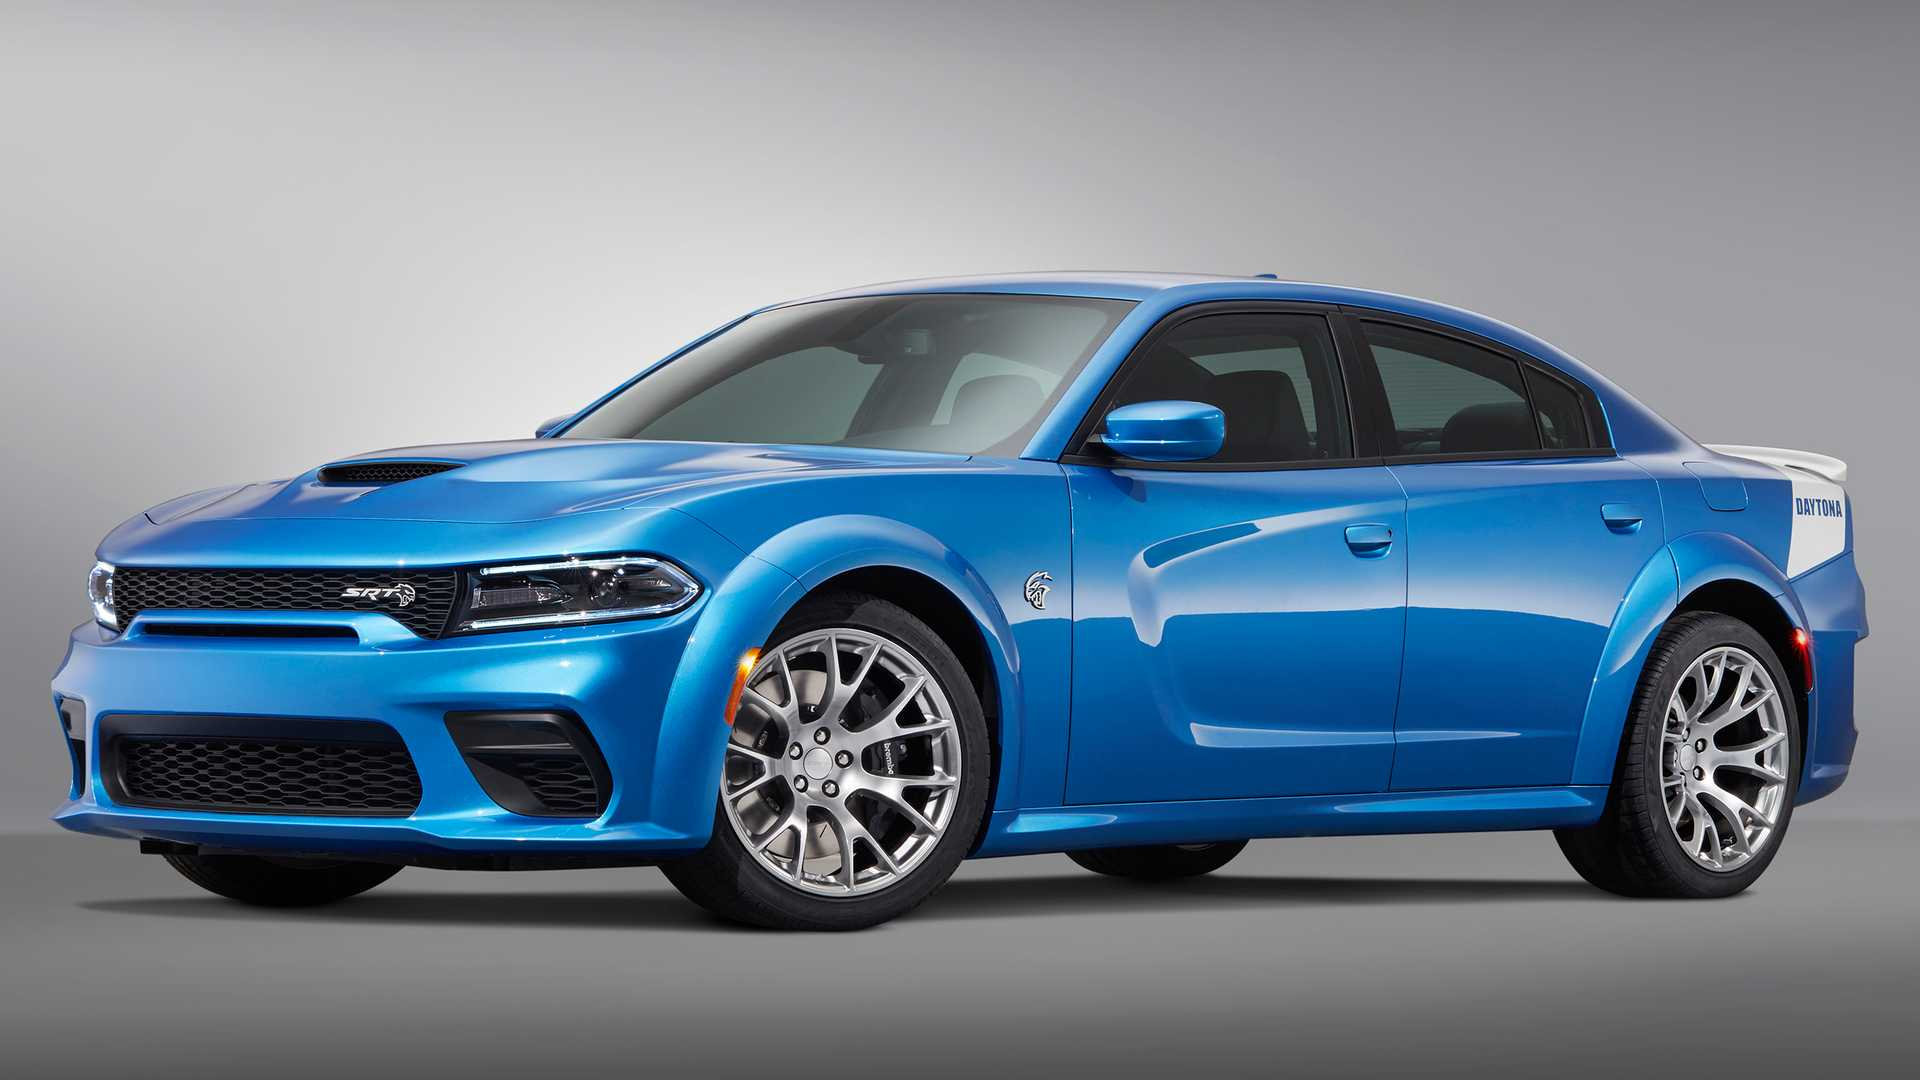 33 New Dodge Srt 2020 Price And Review